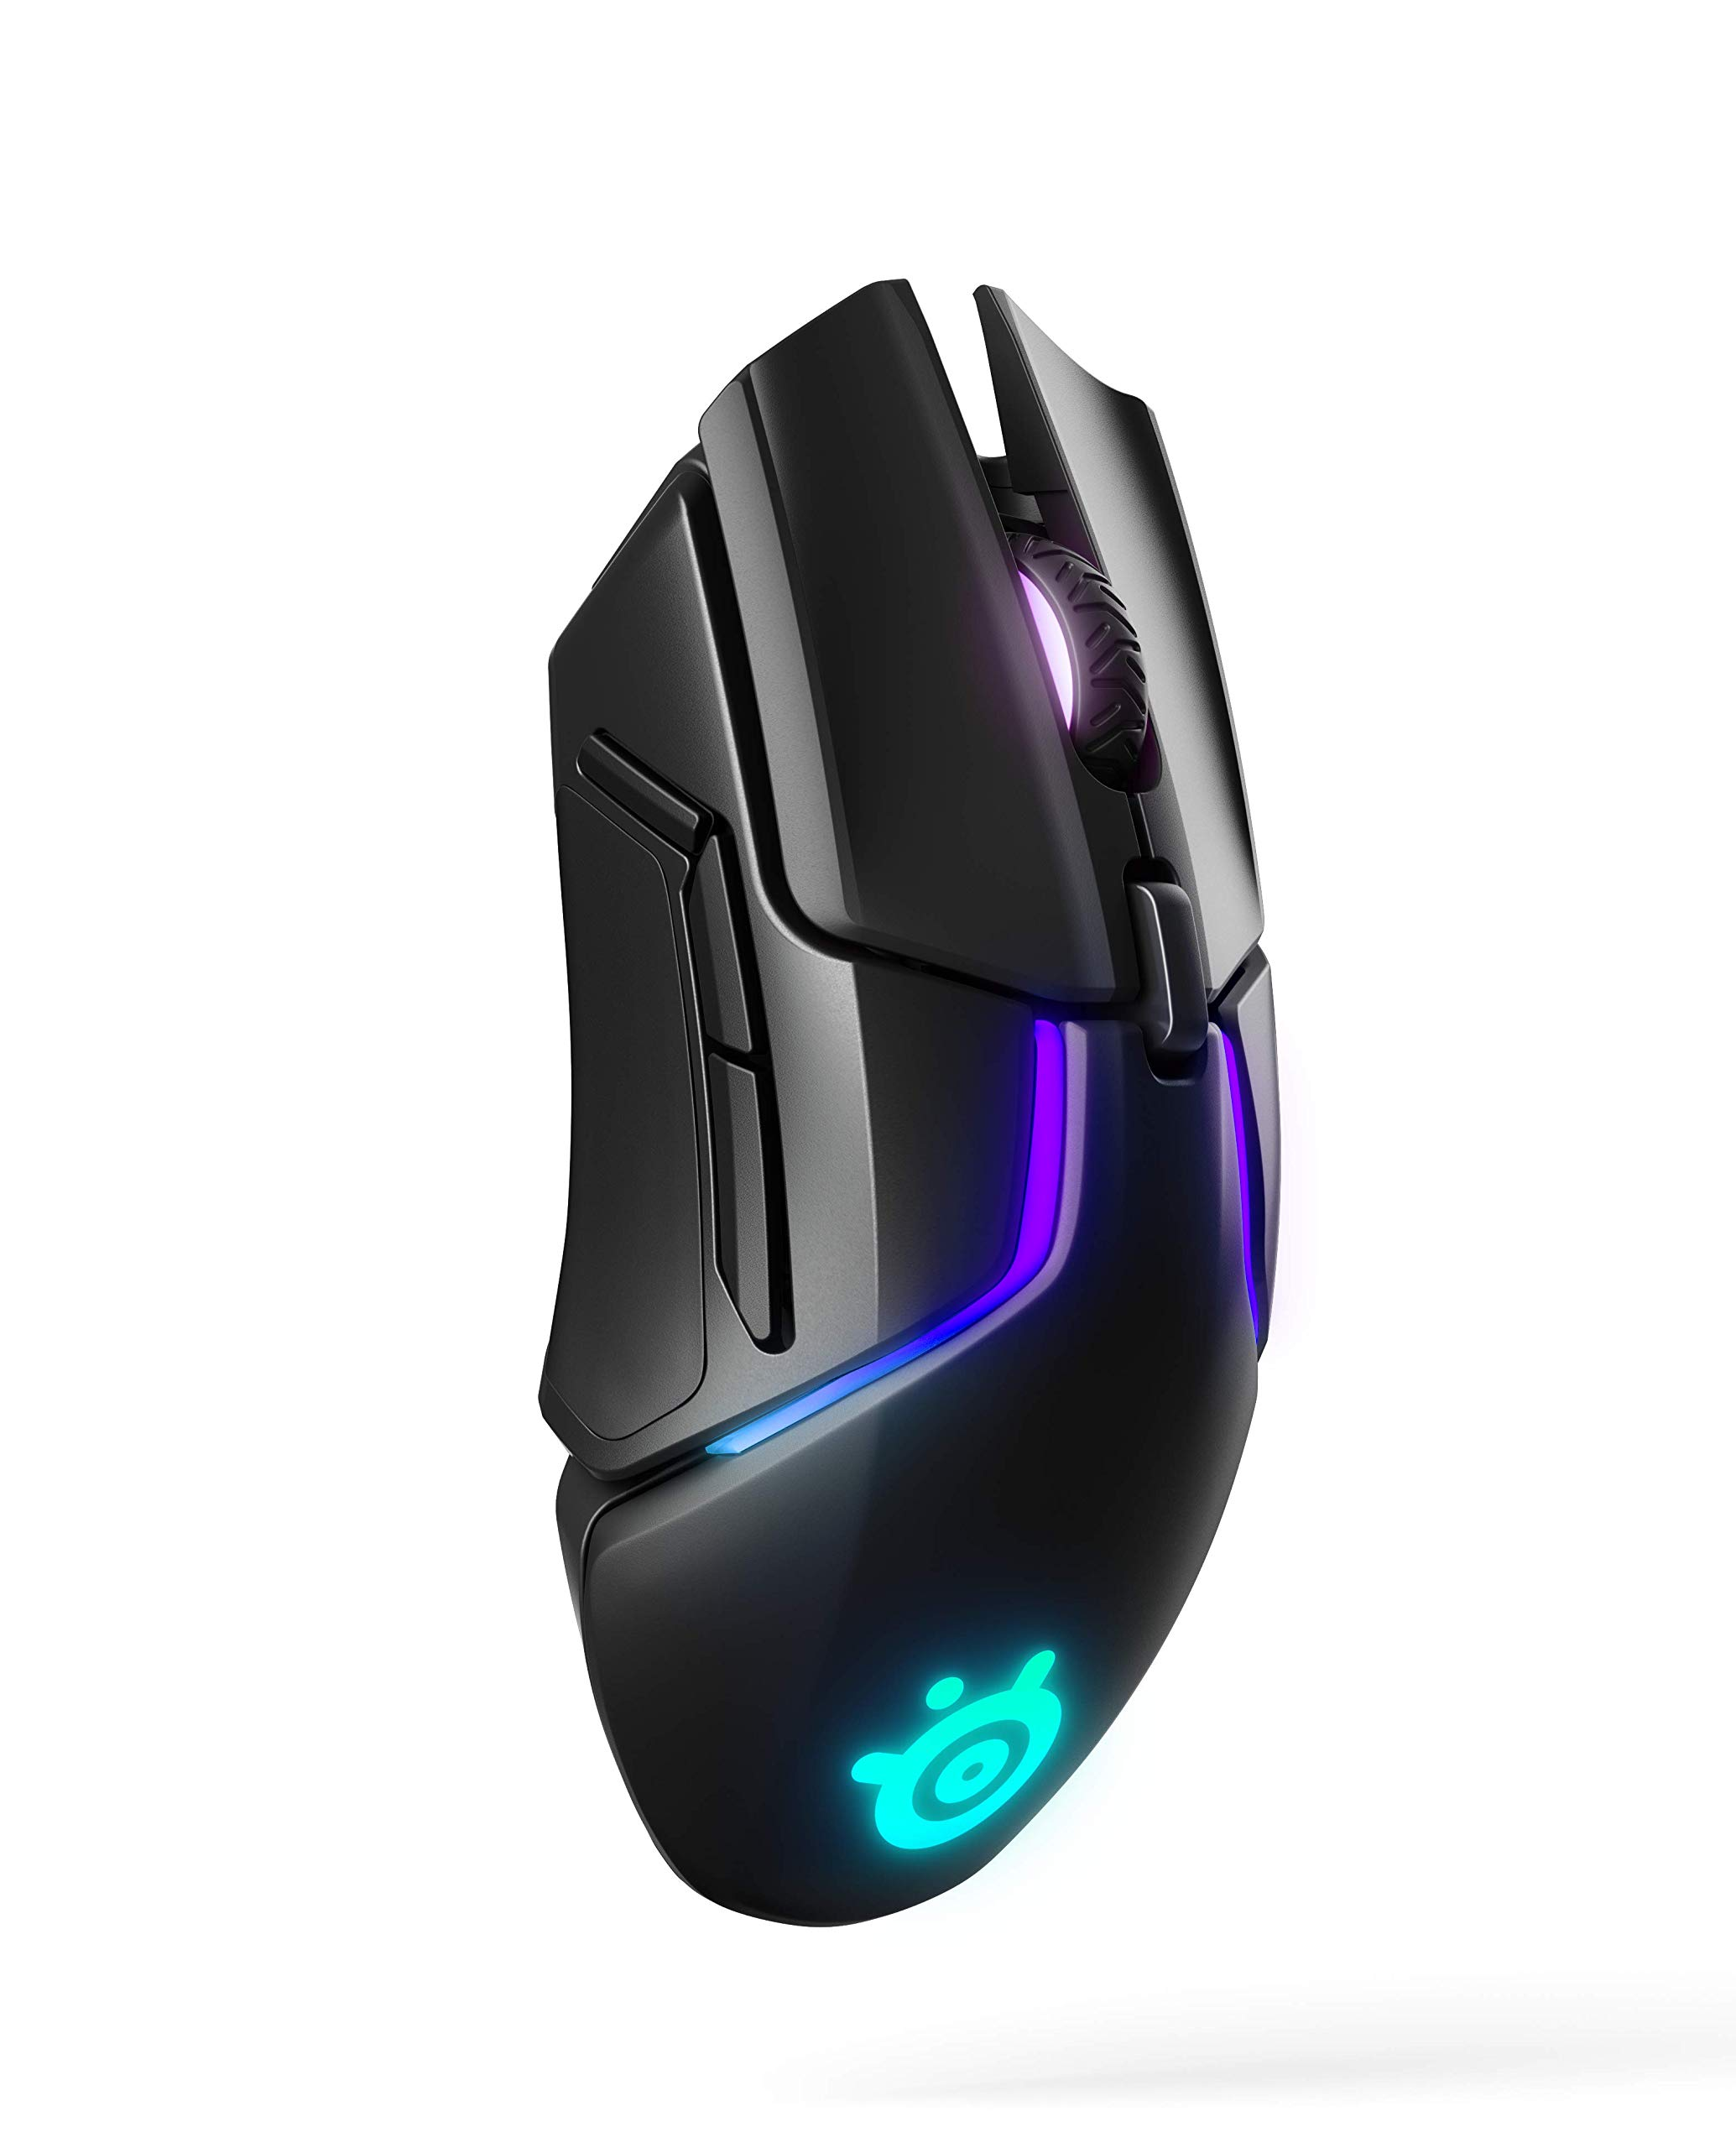 Mouse Gamer : SteelSeries Rival 650 Quantum Sin Cable Rapid